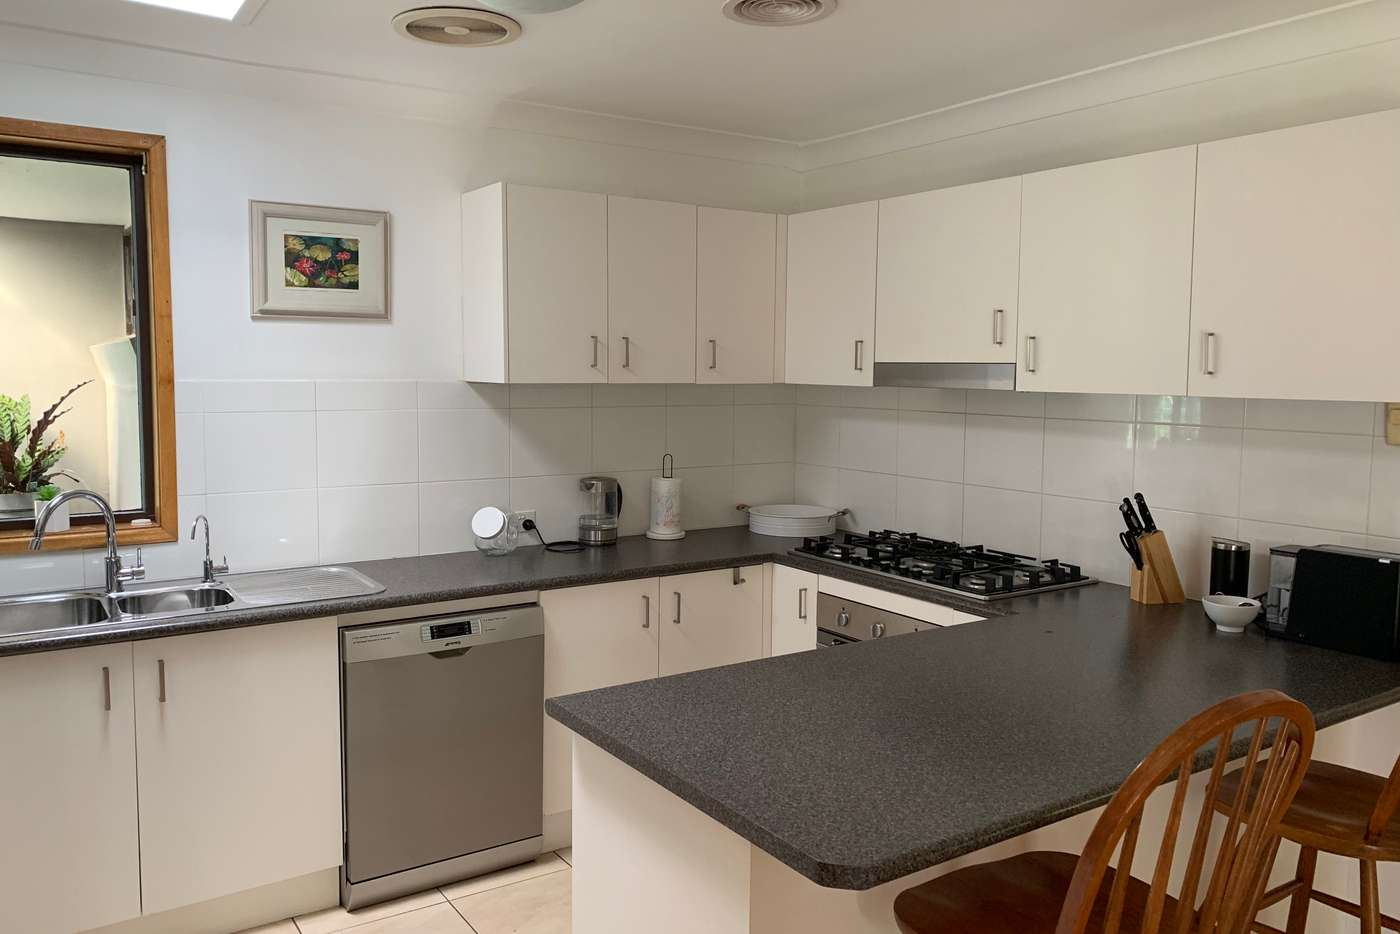 Sixth view of Homely house listing, 7 St James Close, Burradoo NSW 2576